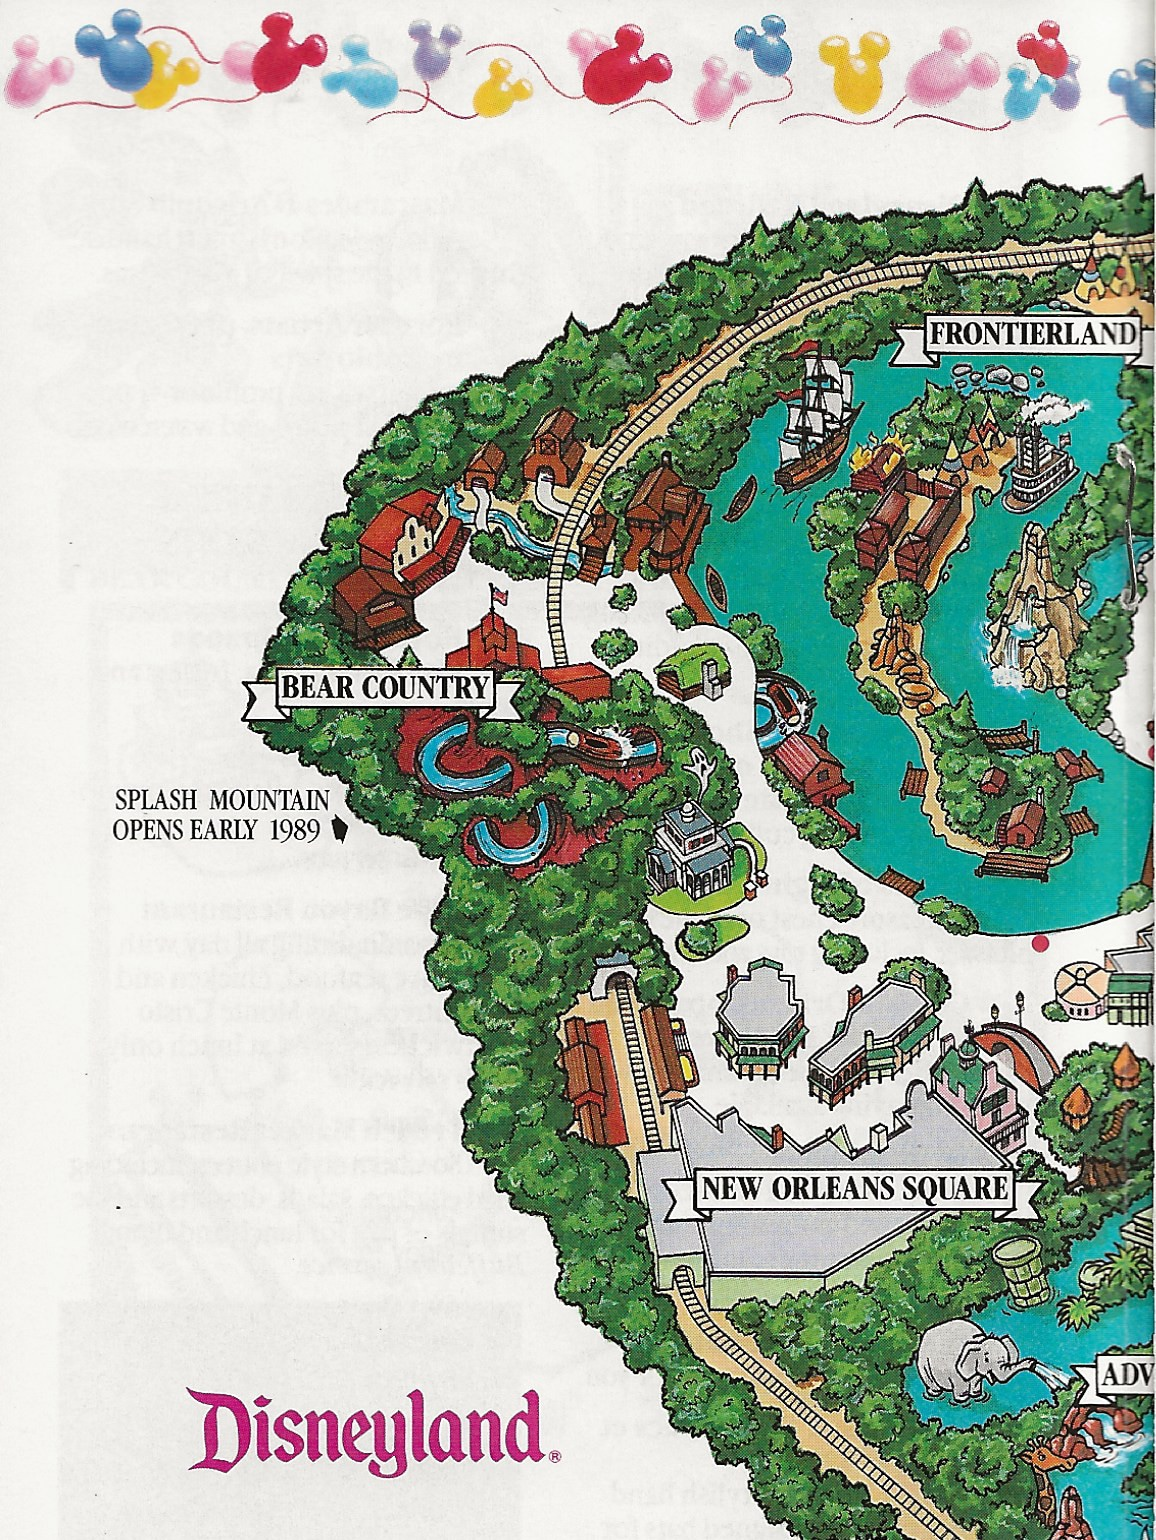 Interior detail of the 1988 Guide Map